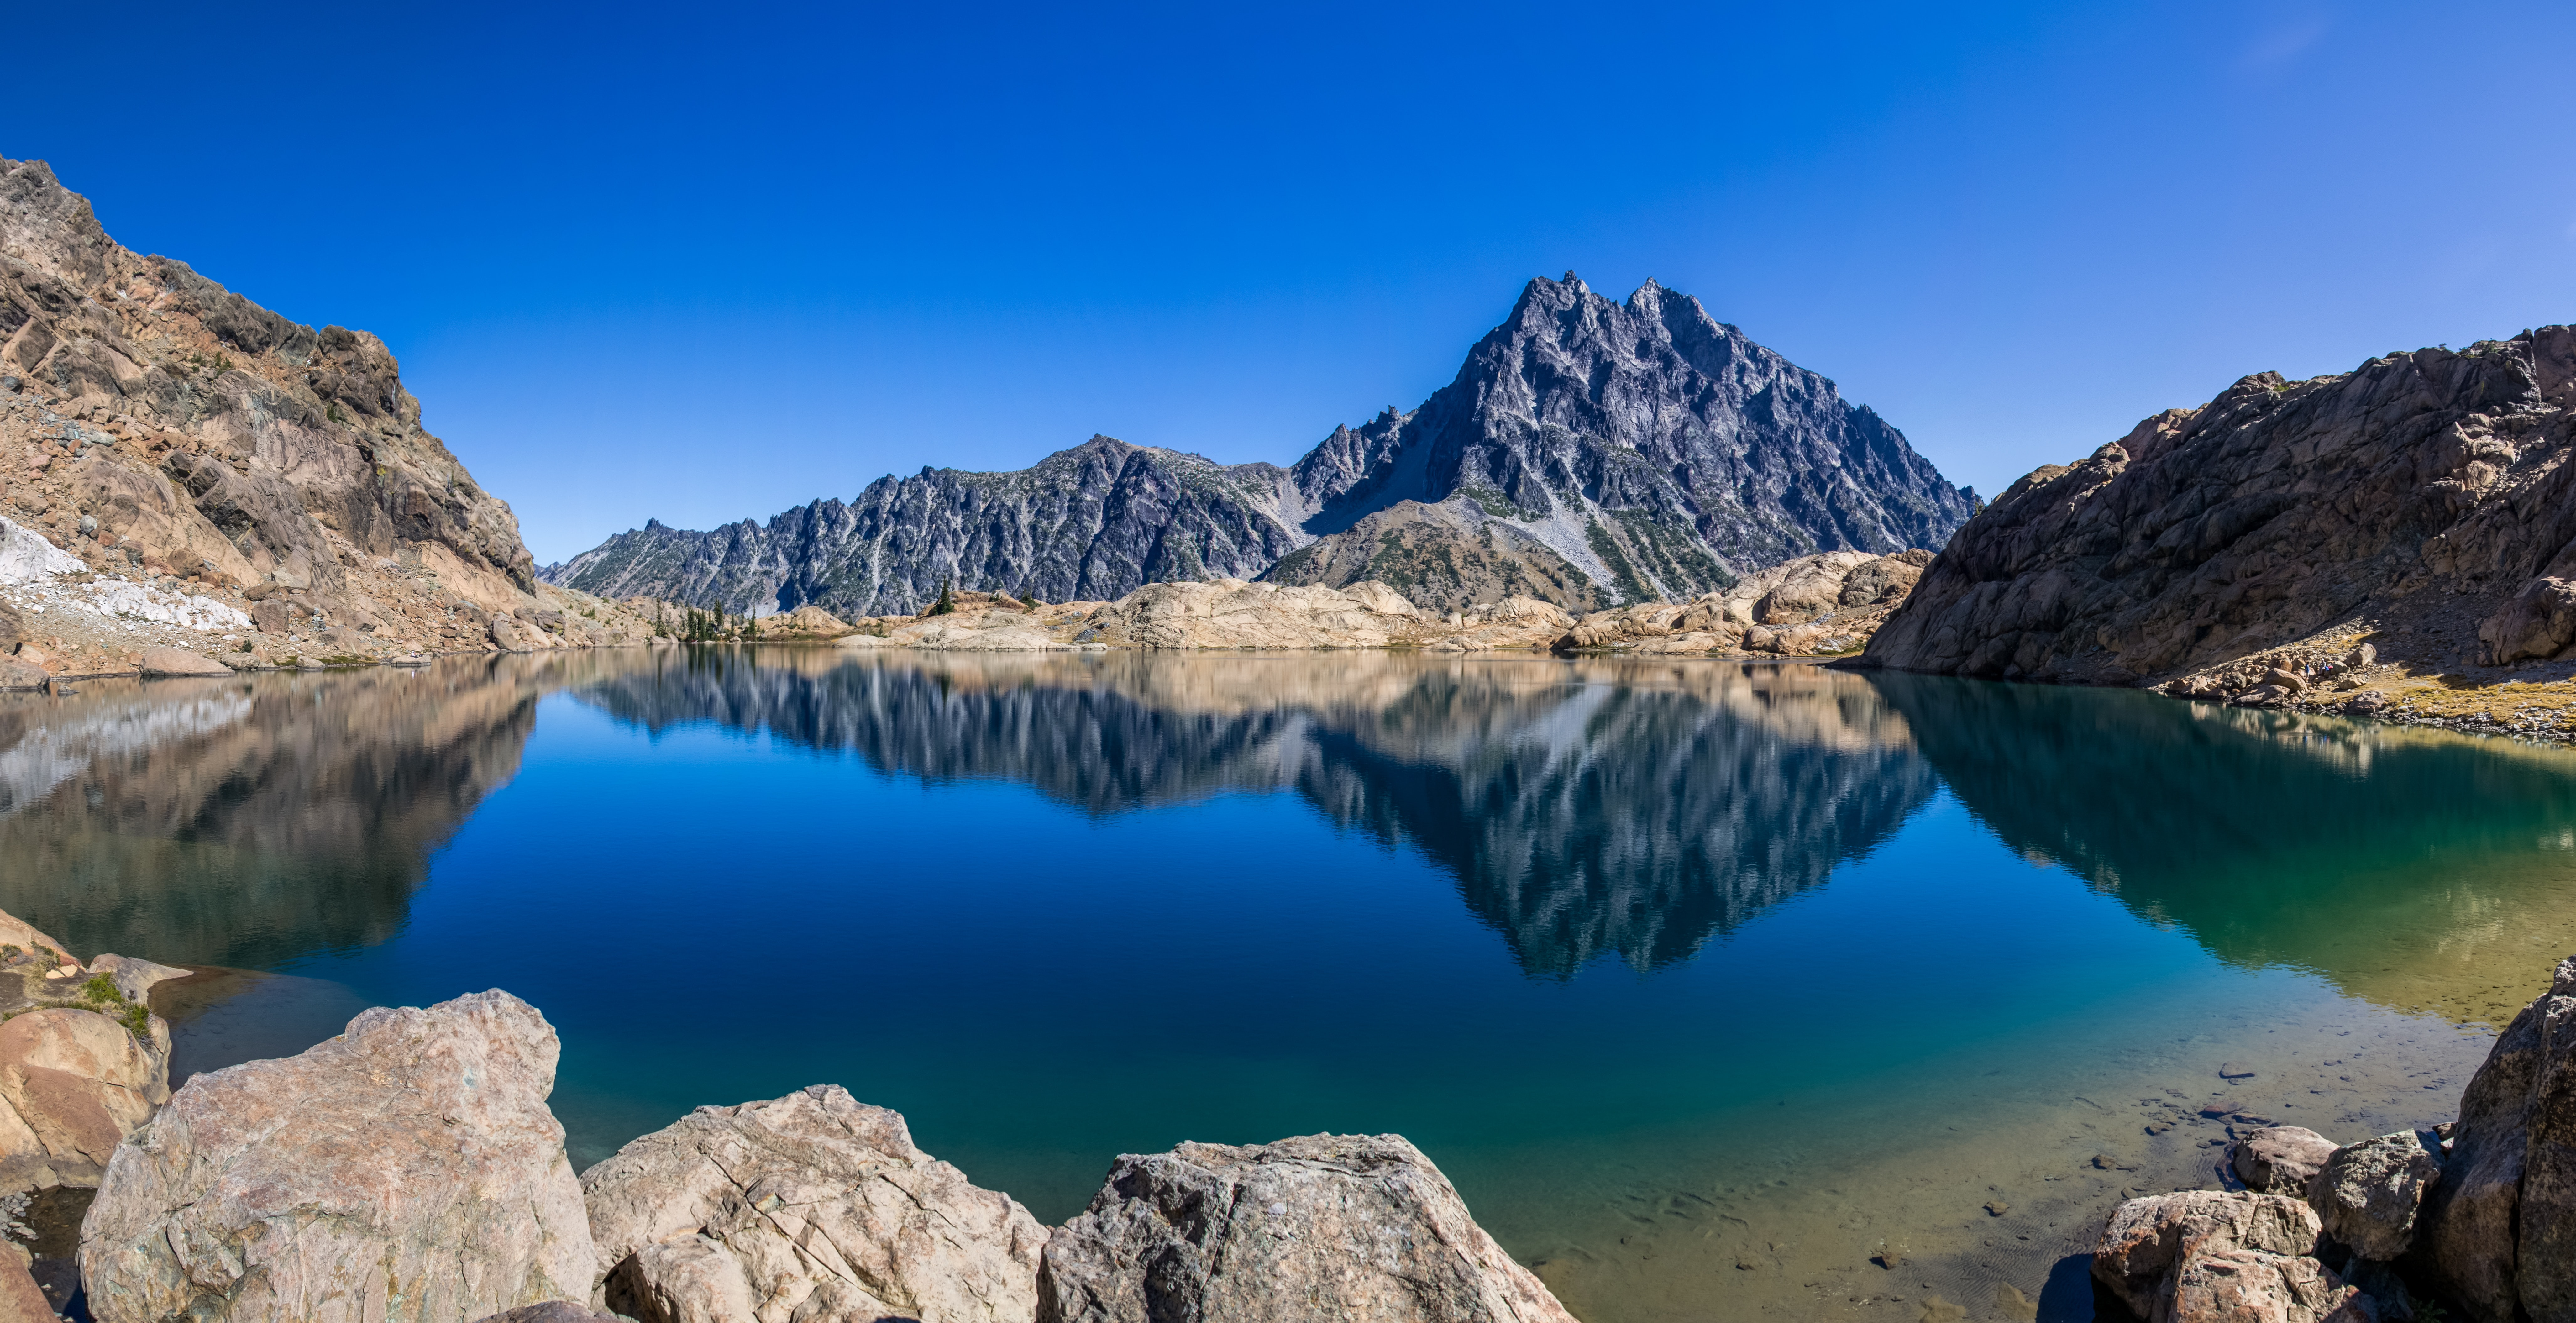 Jagged mountains reflected on the surface of a clear mountain lake